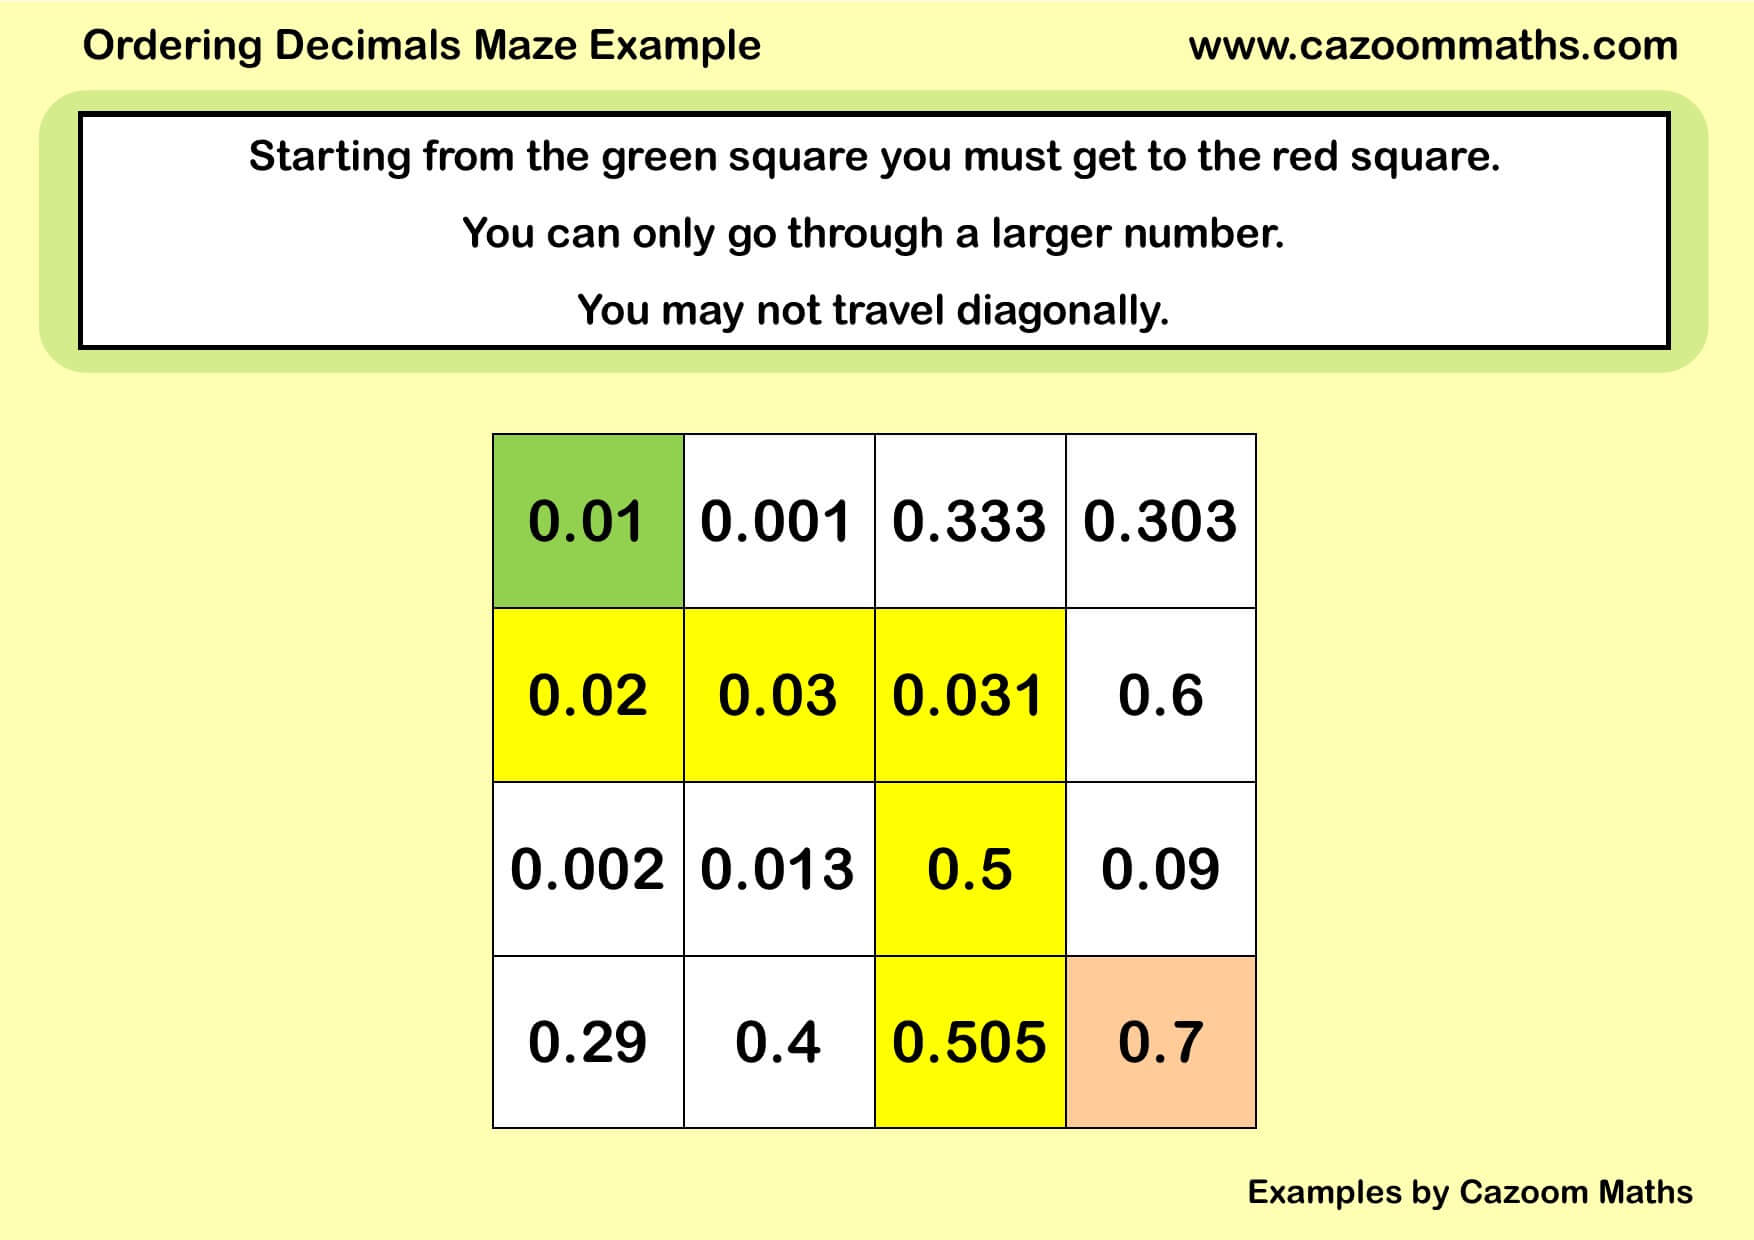 Ordering Decimals Maze Example